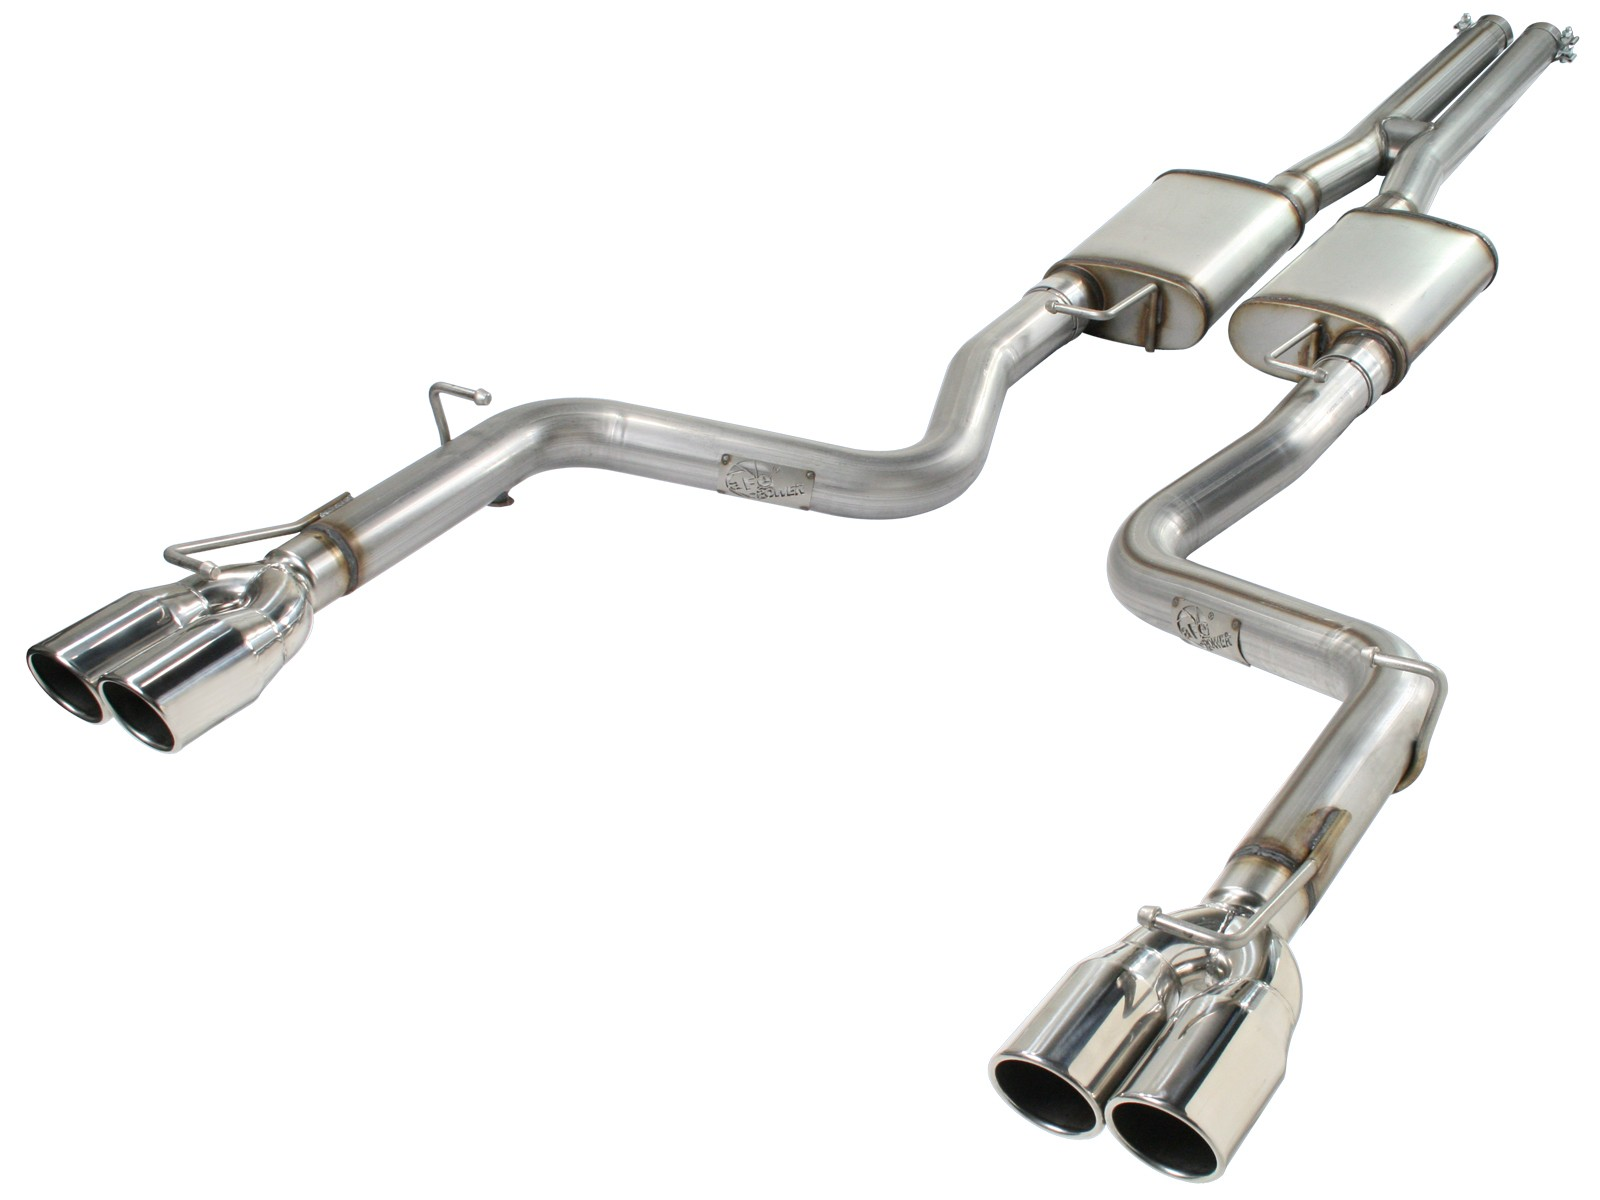 Mach Force Xp 3 409 Stainless Steel Cat Back Exhaust System Afe Power Engine Diagram V8